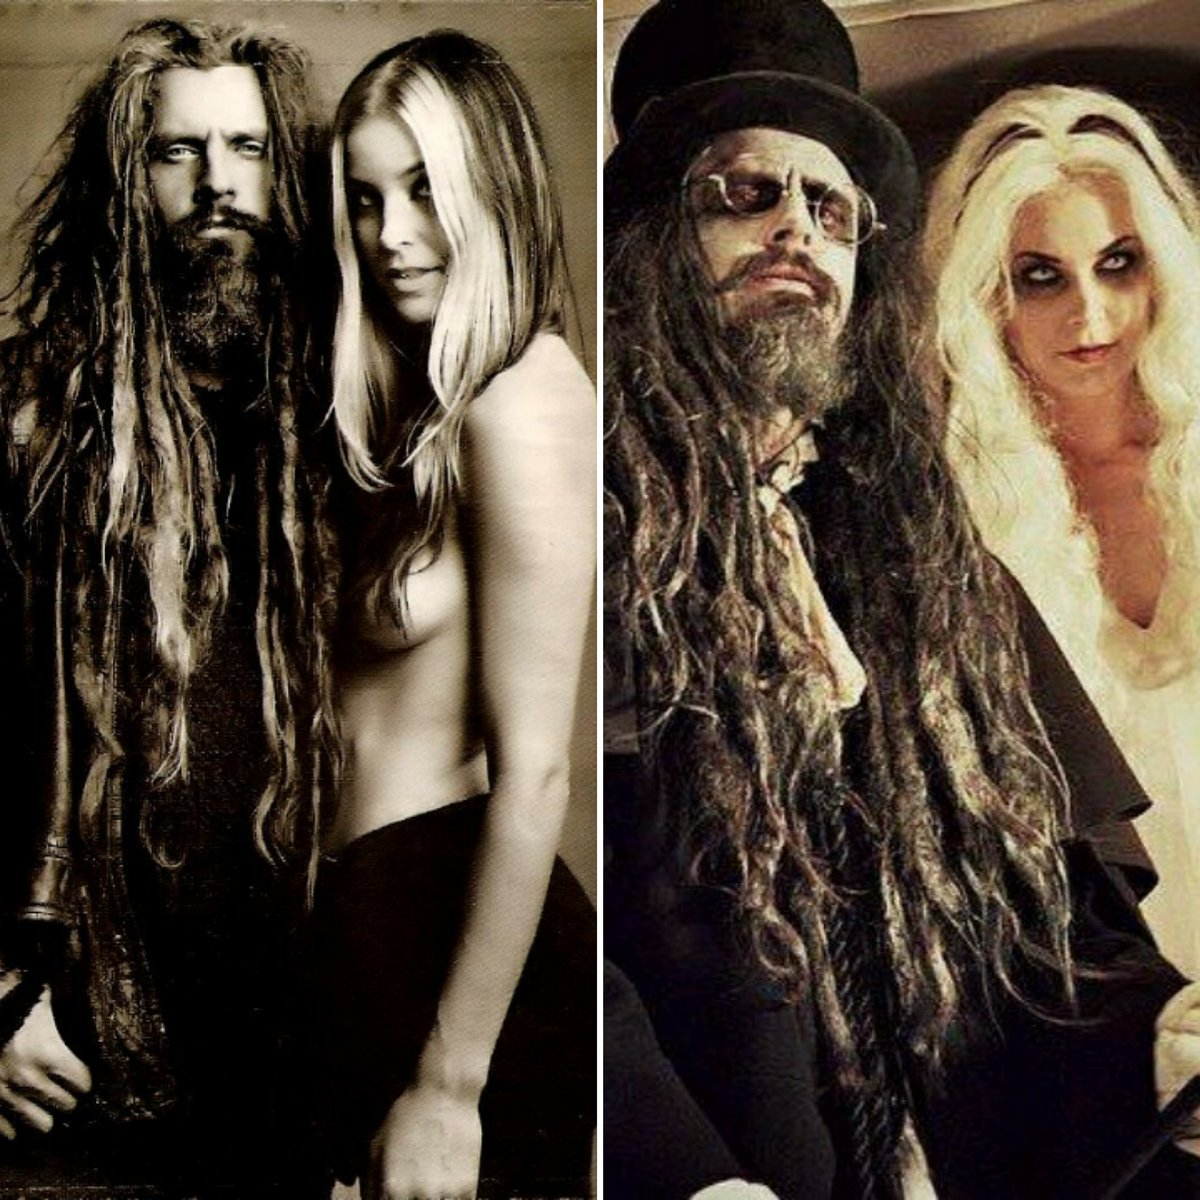 Today I wish @RobZombie & #SheriMoonZombie a most darkfully sweet and #HappyValentinesDay.   And that I still stand by what I say, that if these two were to ever (and I doubt they ever will) break up is the day I truly stop believing in #love.pic.twitter.com/mgBb7KckmH